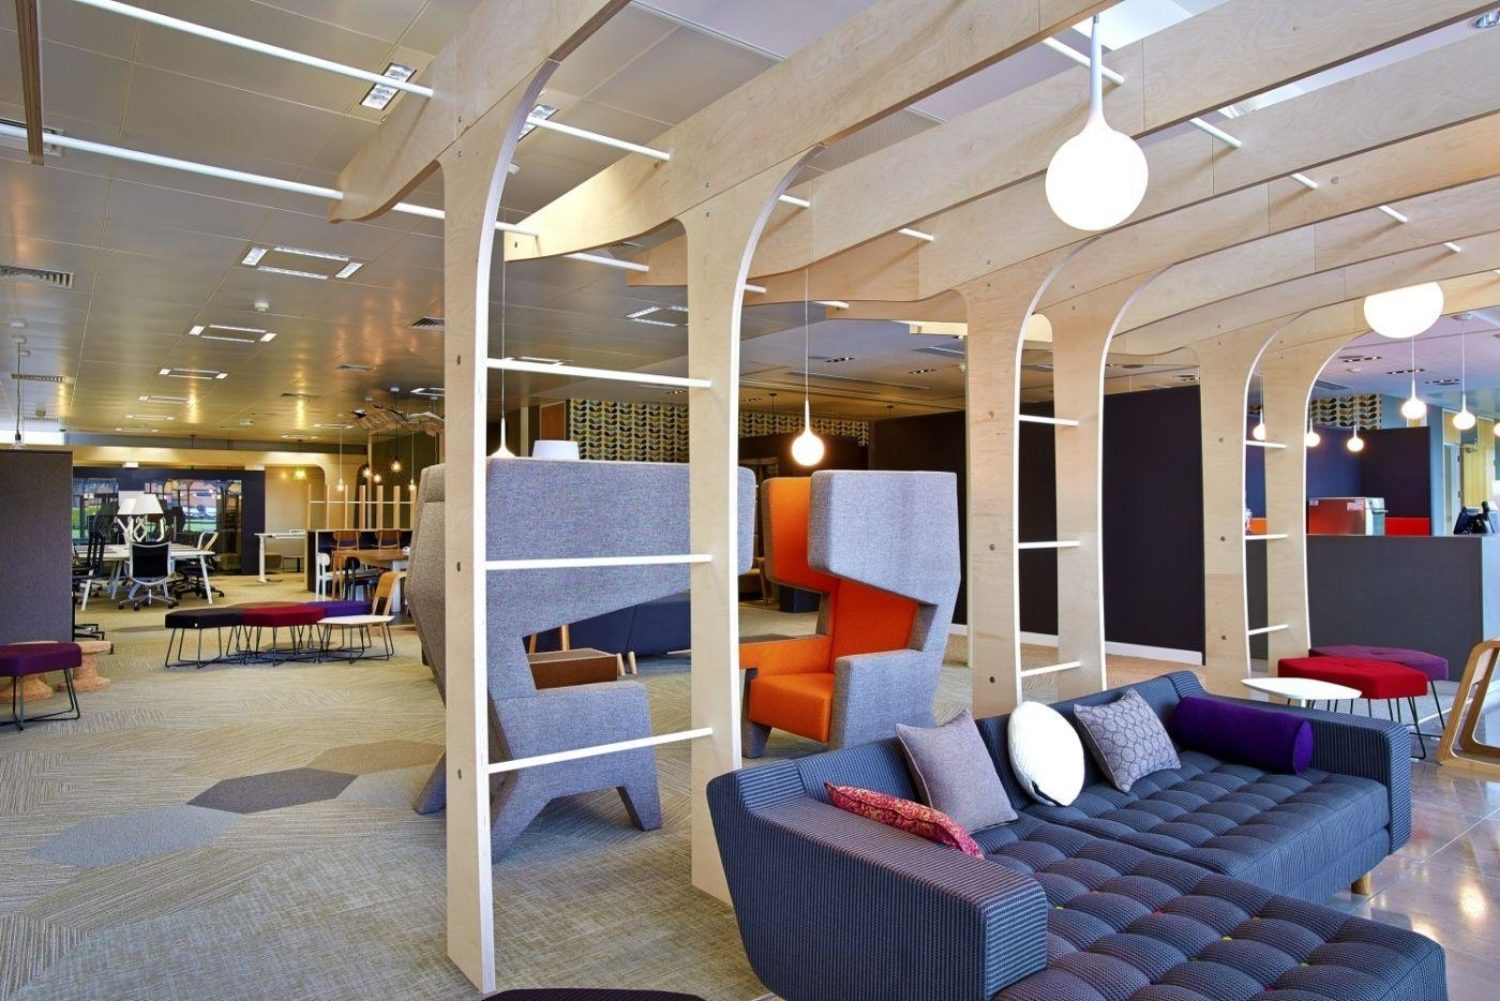 Astra Zeneca team breakout space fit out